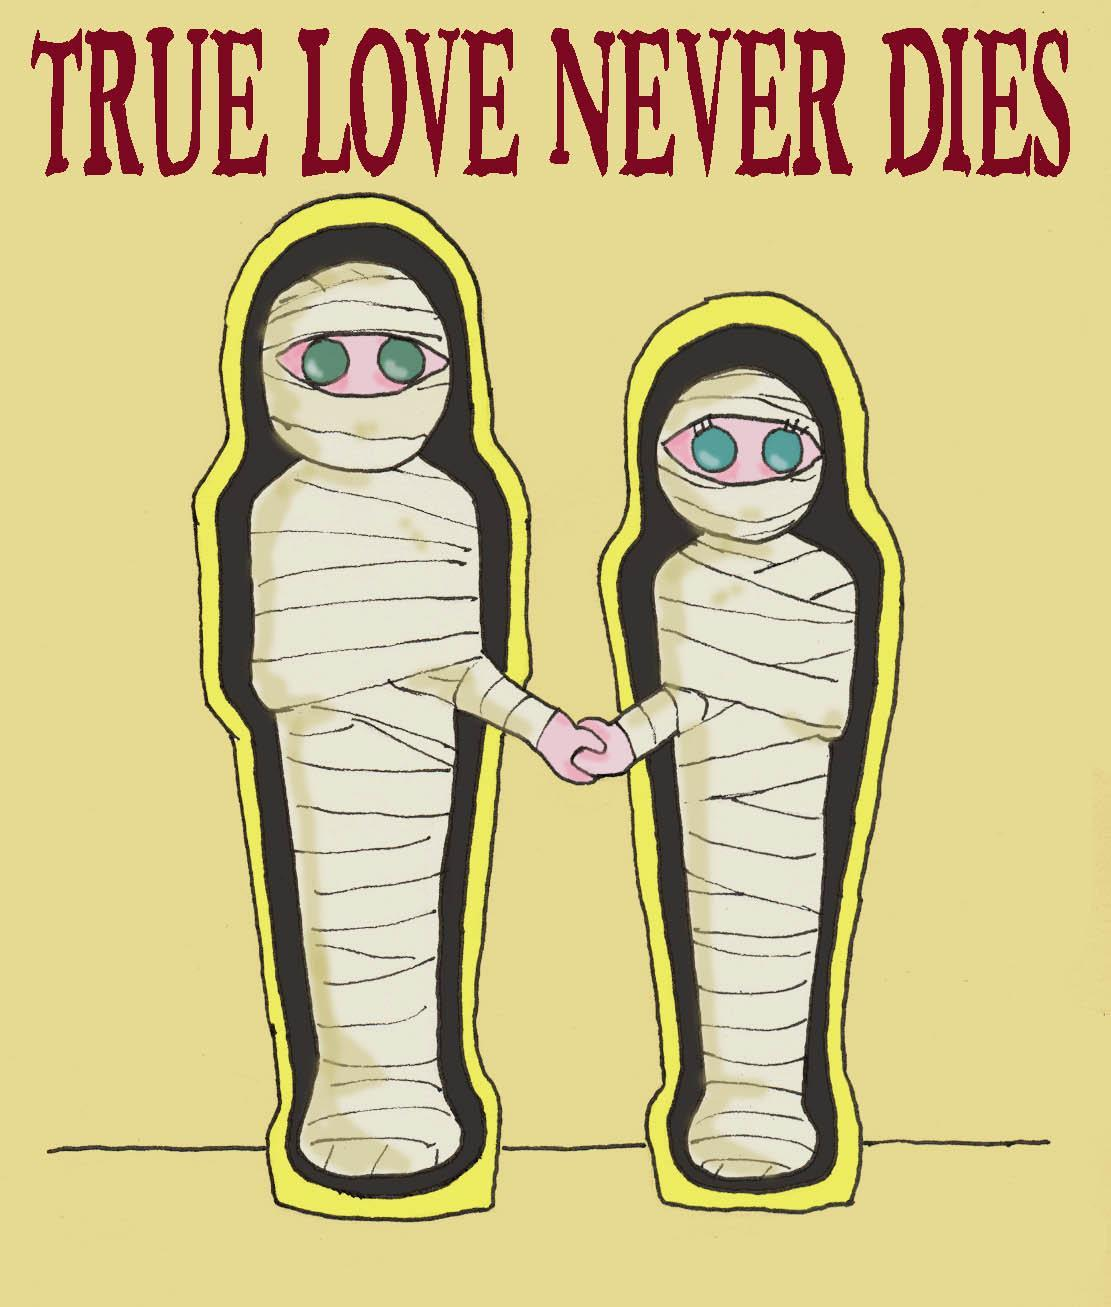 if you were a mummy would you try to find true love......or die trying